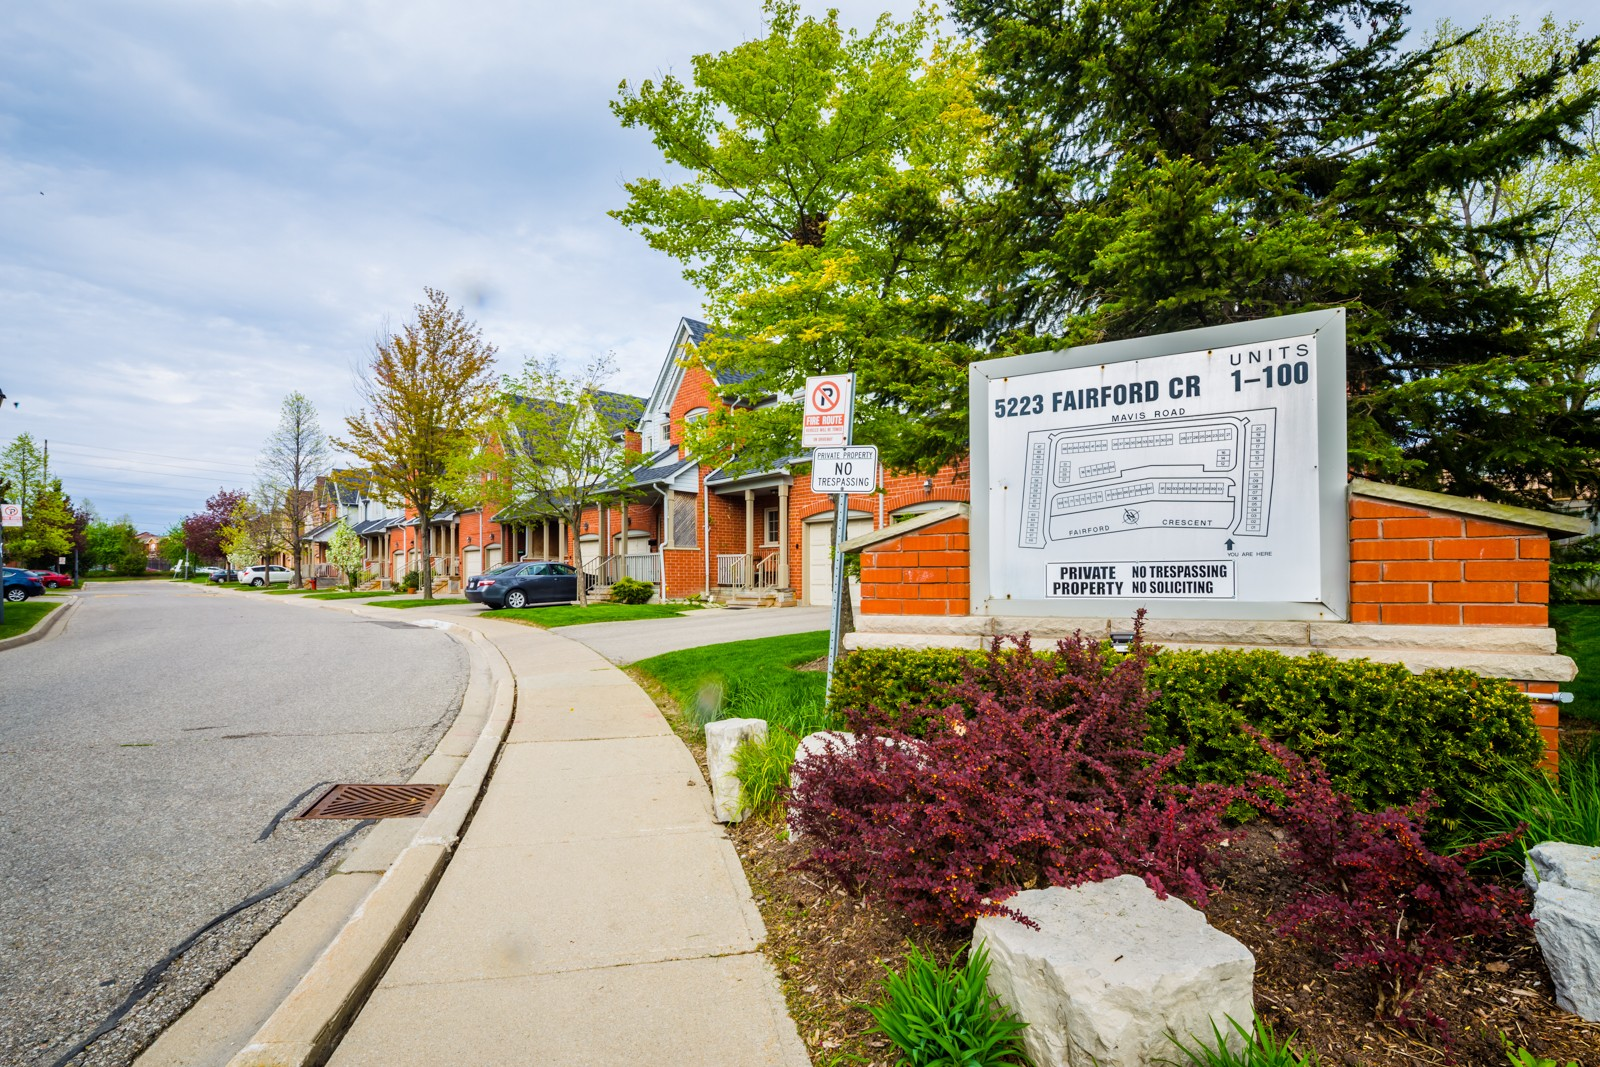 5223 Fairford Cres Townhouses at 5223 Fairford Crescent, Mississauga 1